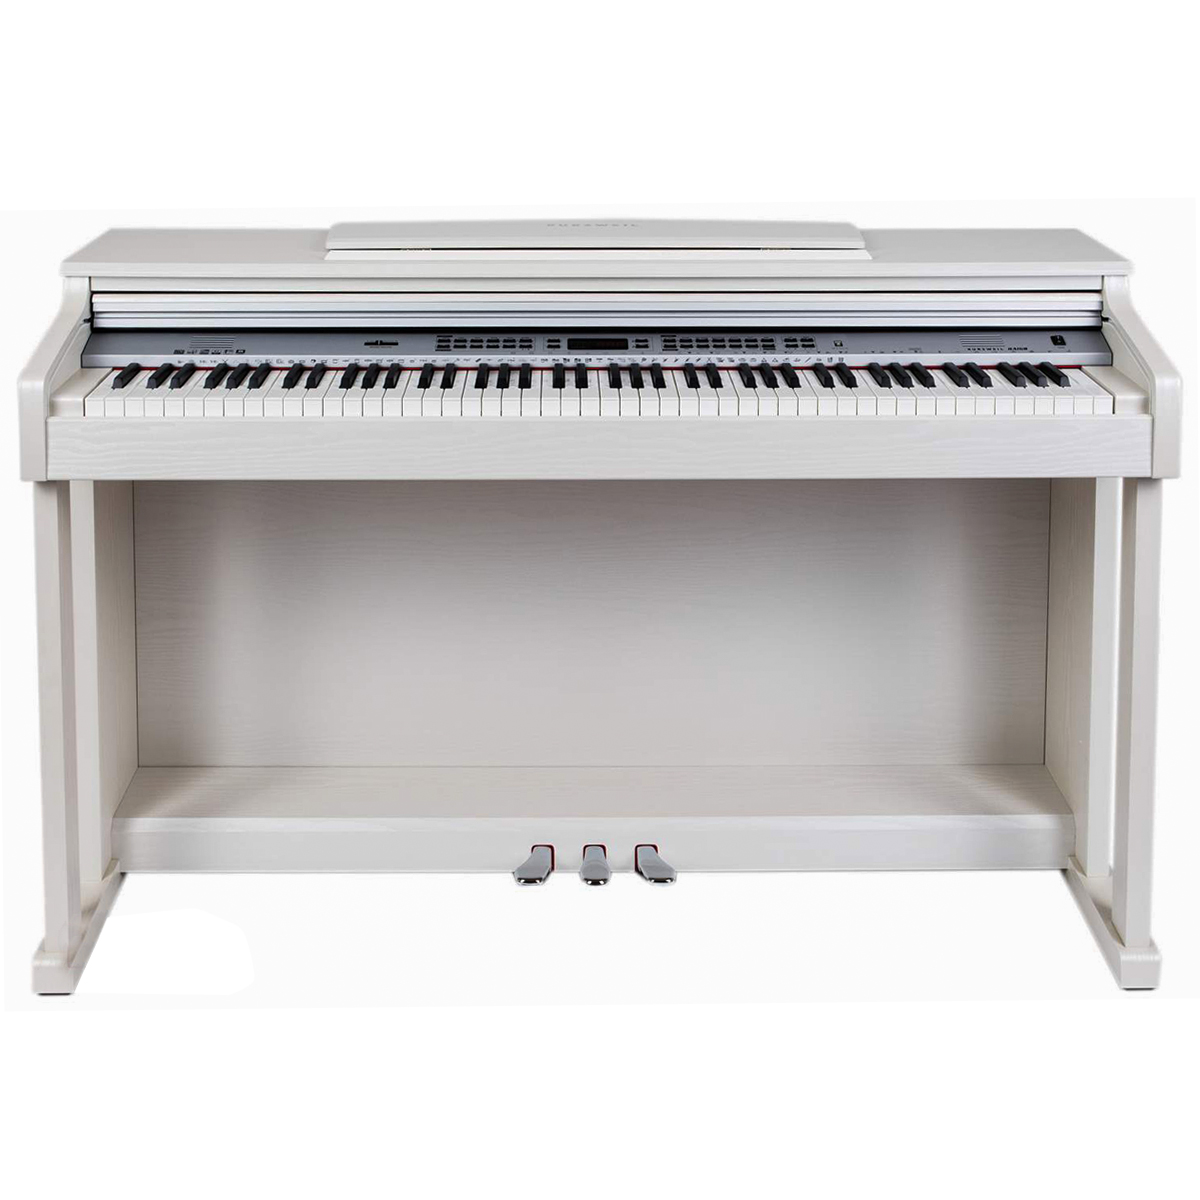 KURZWEIL KA150-WH: 88 Fully-Weighted, Hammer Action Digital Piano (White)